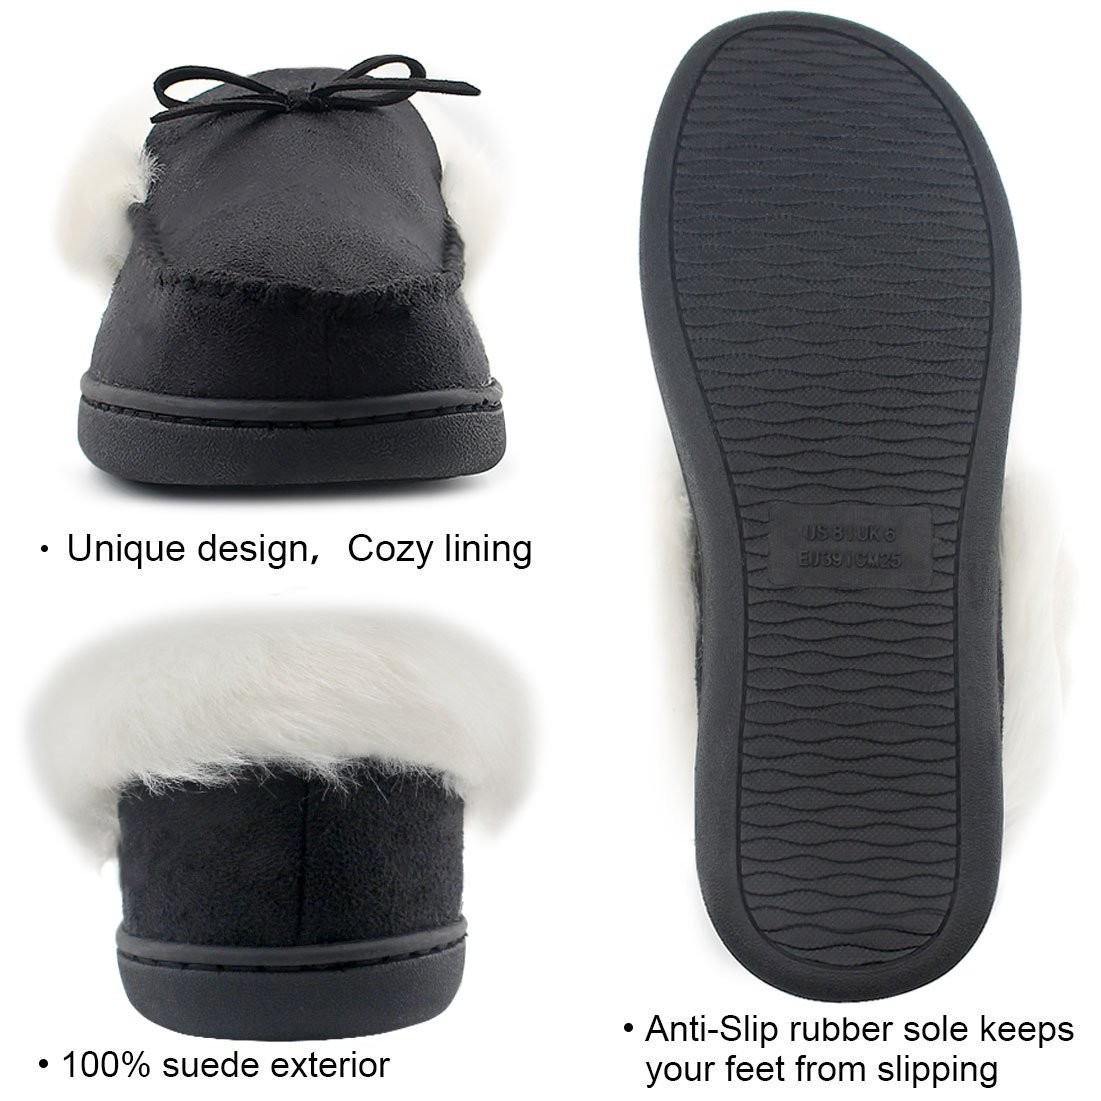 HomeIdeas Women's Faux Fur Lined Suede House Slippers, Breathable Indoor Outdoor Moccasins (7 B(M) US, Black) by HomeIdeas (Image #4)